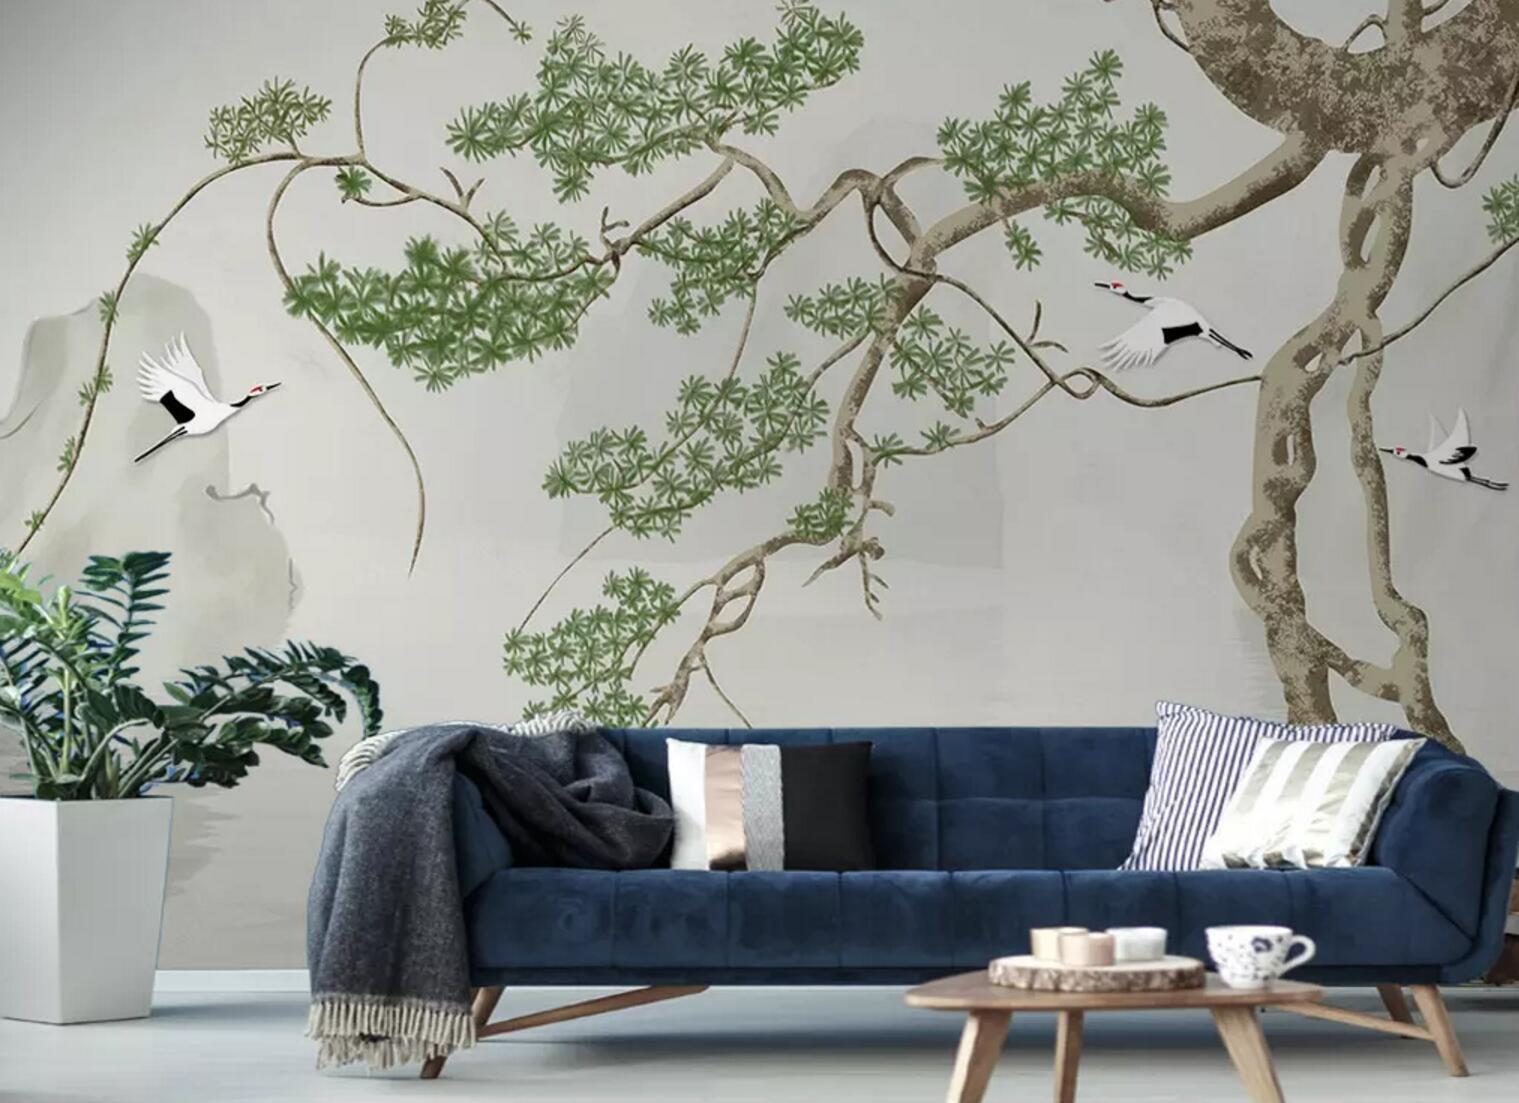 3D Bird Tree Grün 97 Wall Paper Exclusive MXY Wallpaper Mural Decal Indoor Wall